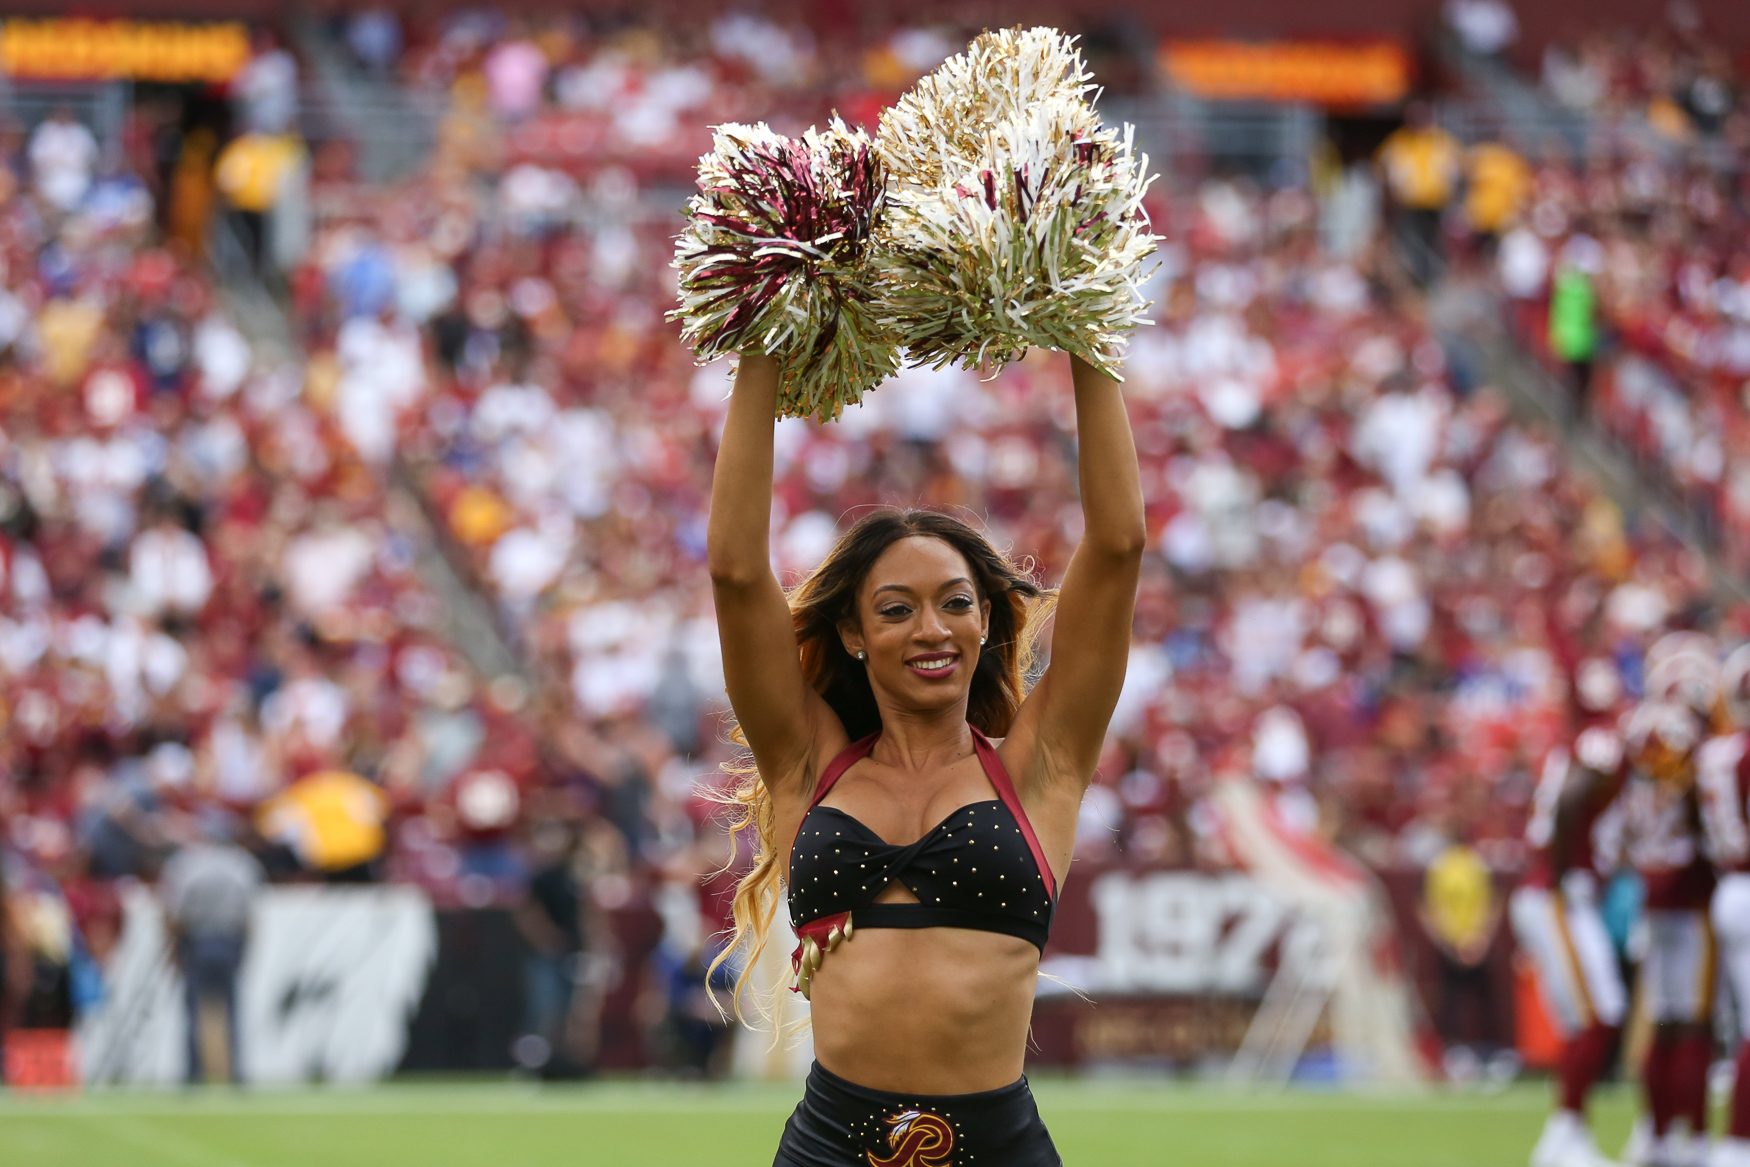 Although the Redskins lost their home opener to the Indianapolis Colts, the First Ladies of Football took to the field to cheer on the team. Here were our favorite moments from the Redskins cheerleading team. (Amanda Andrade-Rhoades/DC Refined)